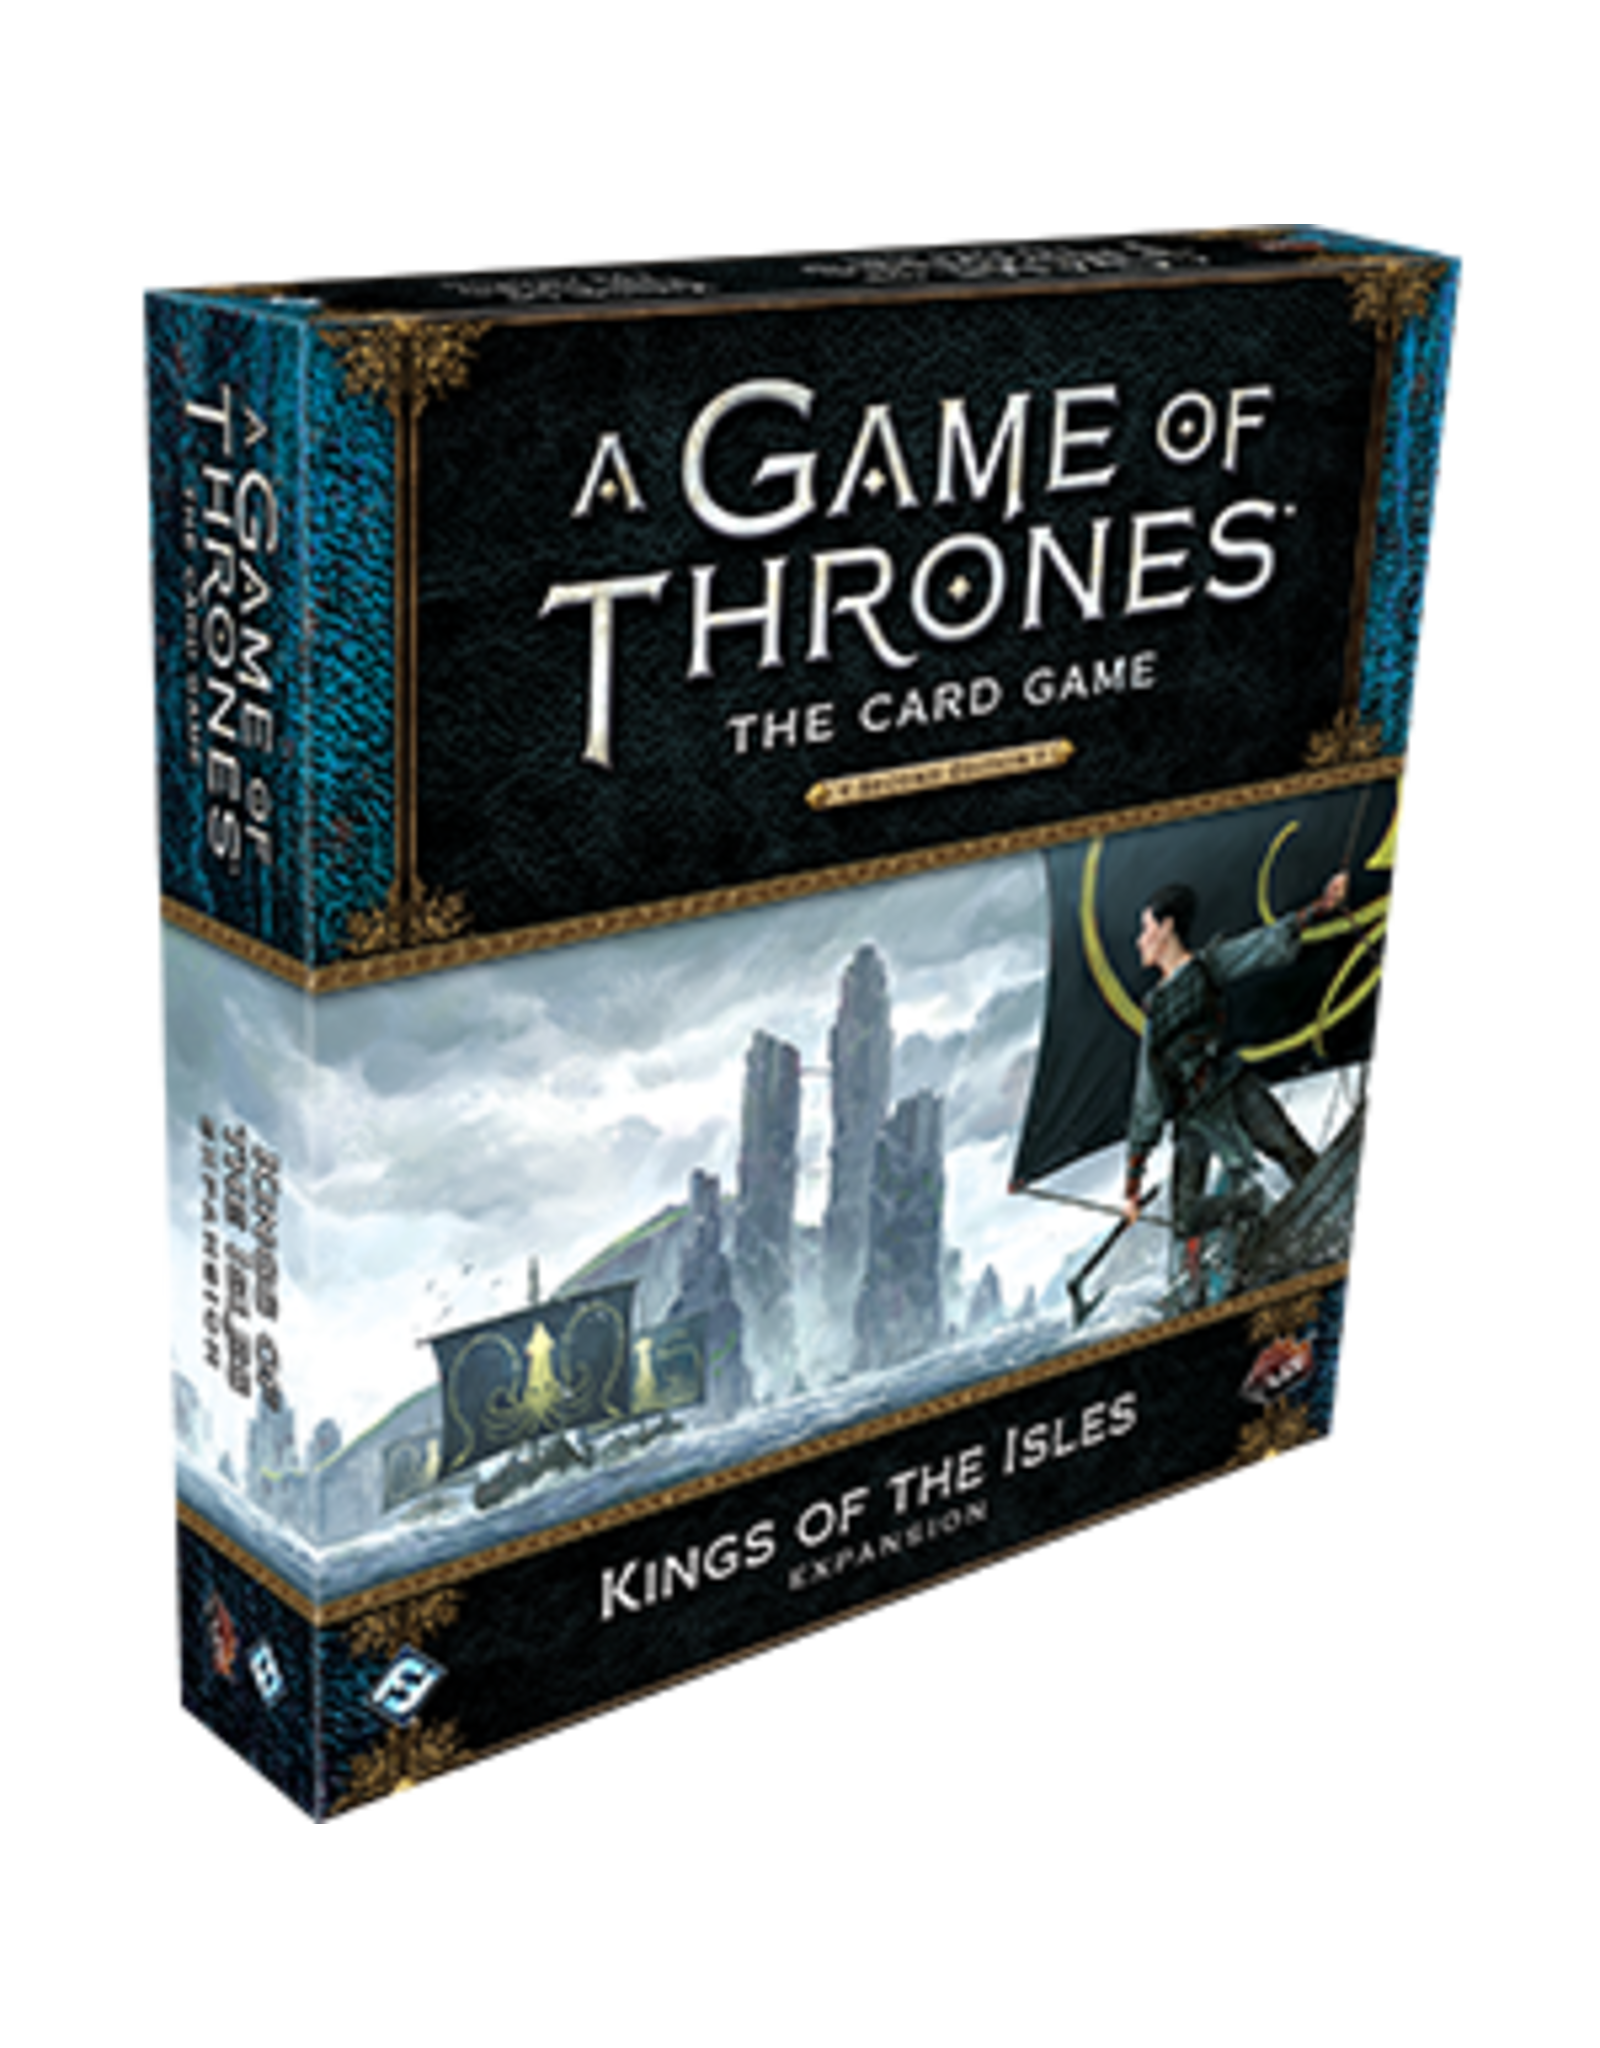 Fantasy Flight Games Game of Thrones LCG: King of the Isles (Expansion)